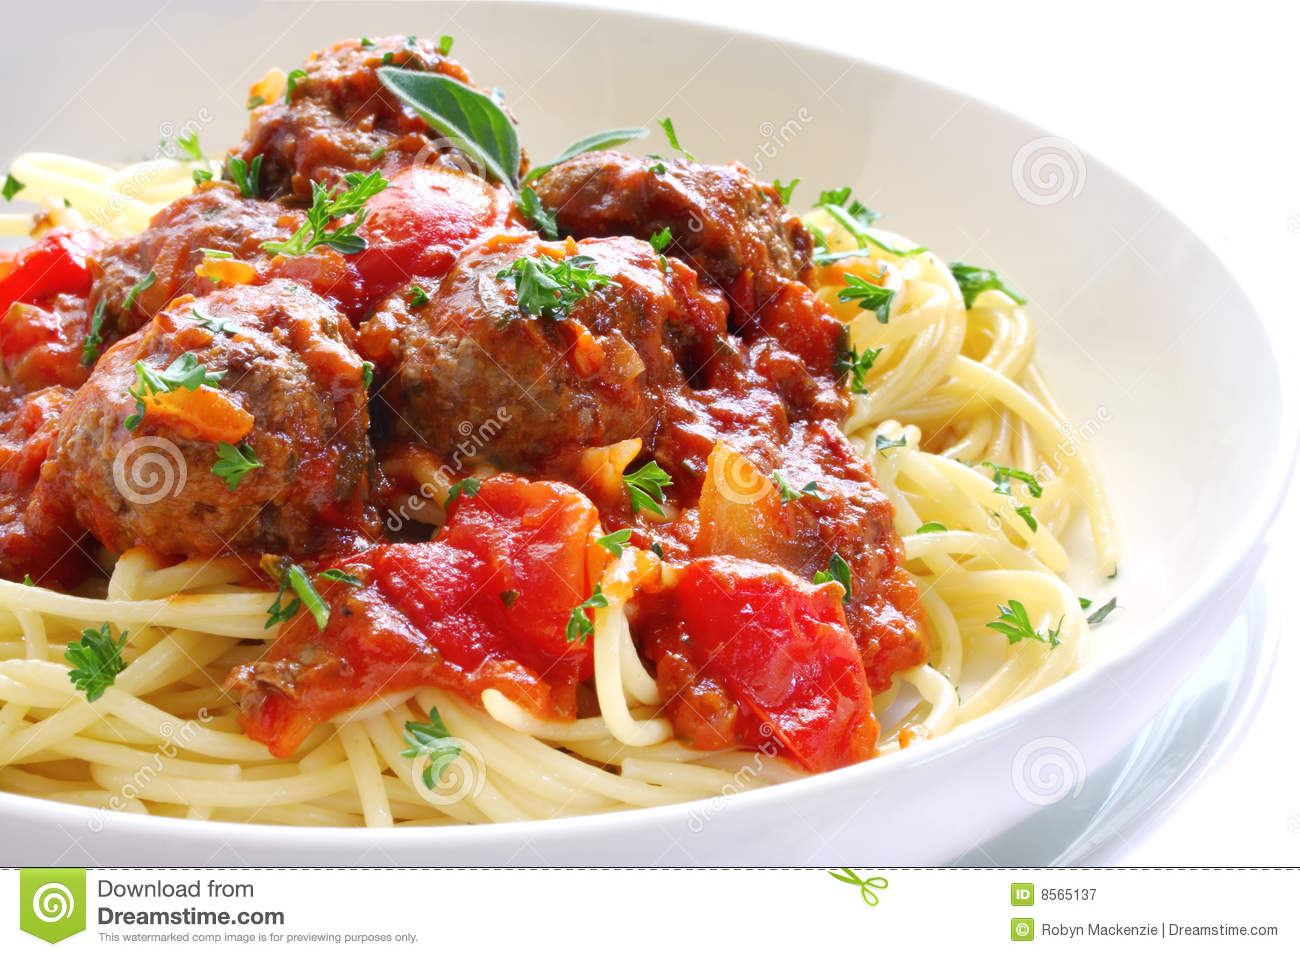 Displaying (19) Gallery Images For Spaghetti And Meatballs Clipart...